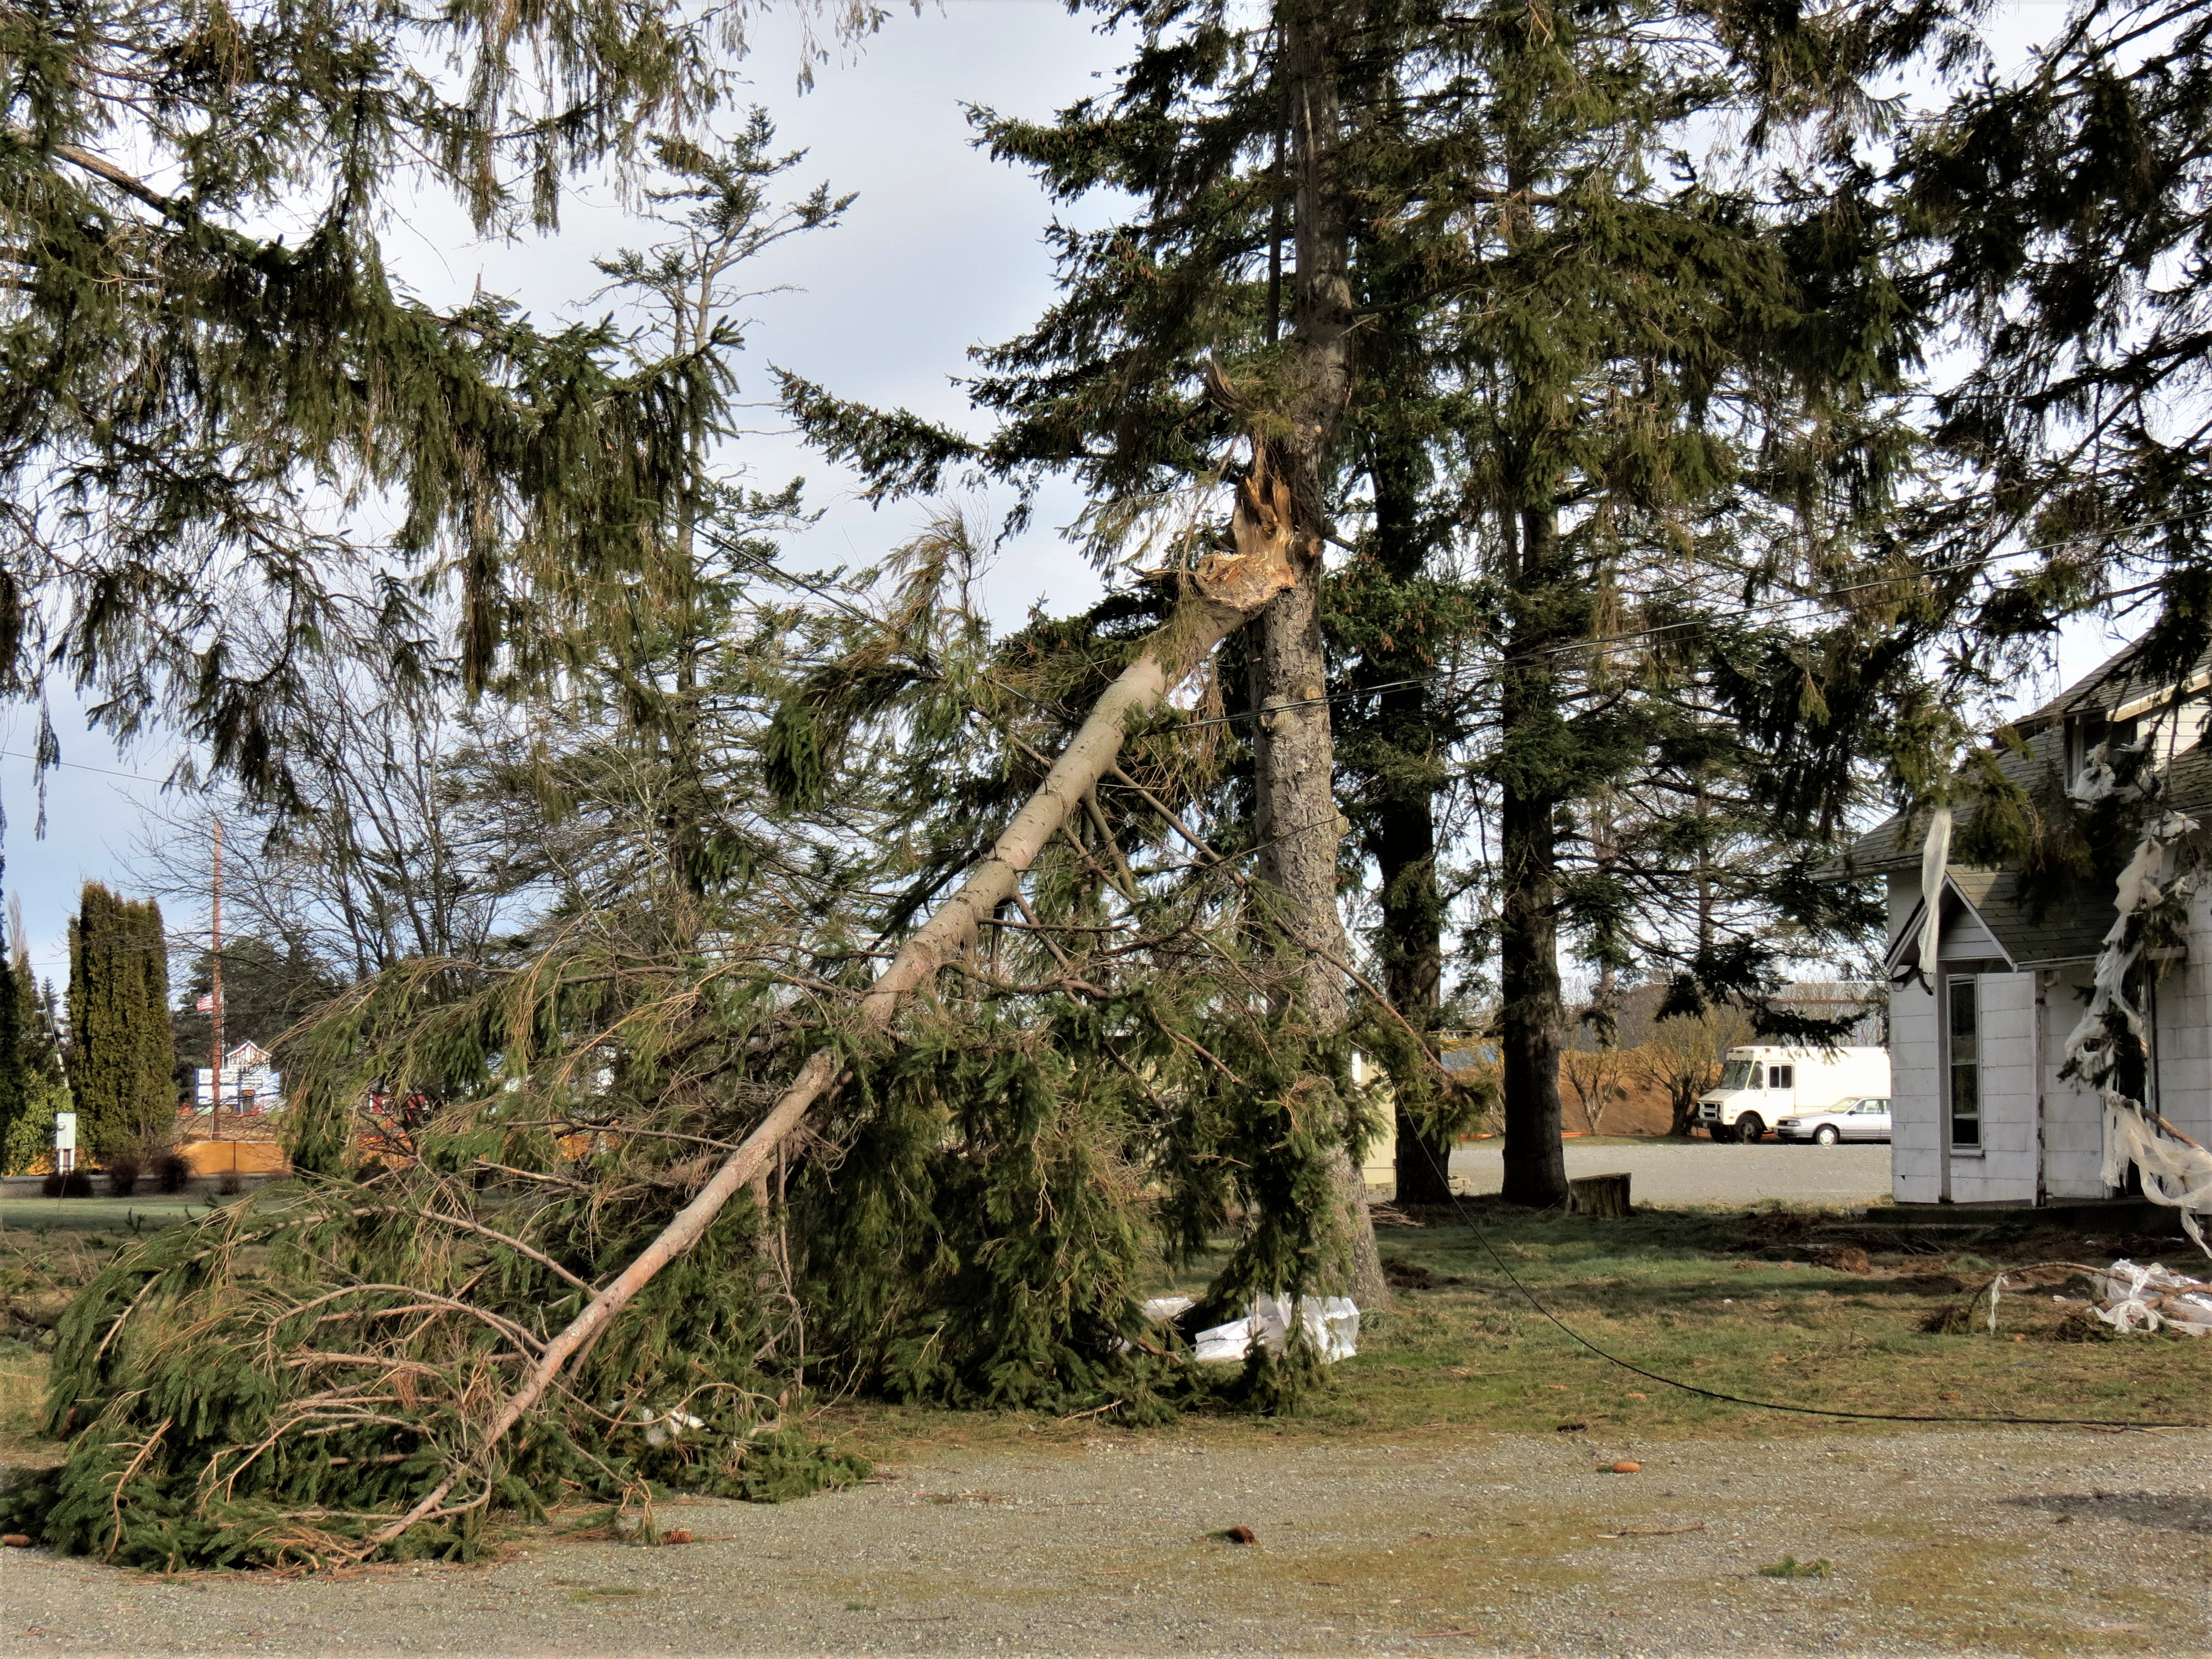 A damaged tree on Portal Way after a windstorm with 70mph gusts (February 10, 2019). Photo: My Ferndale News